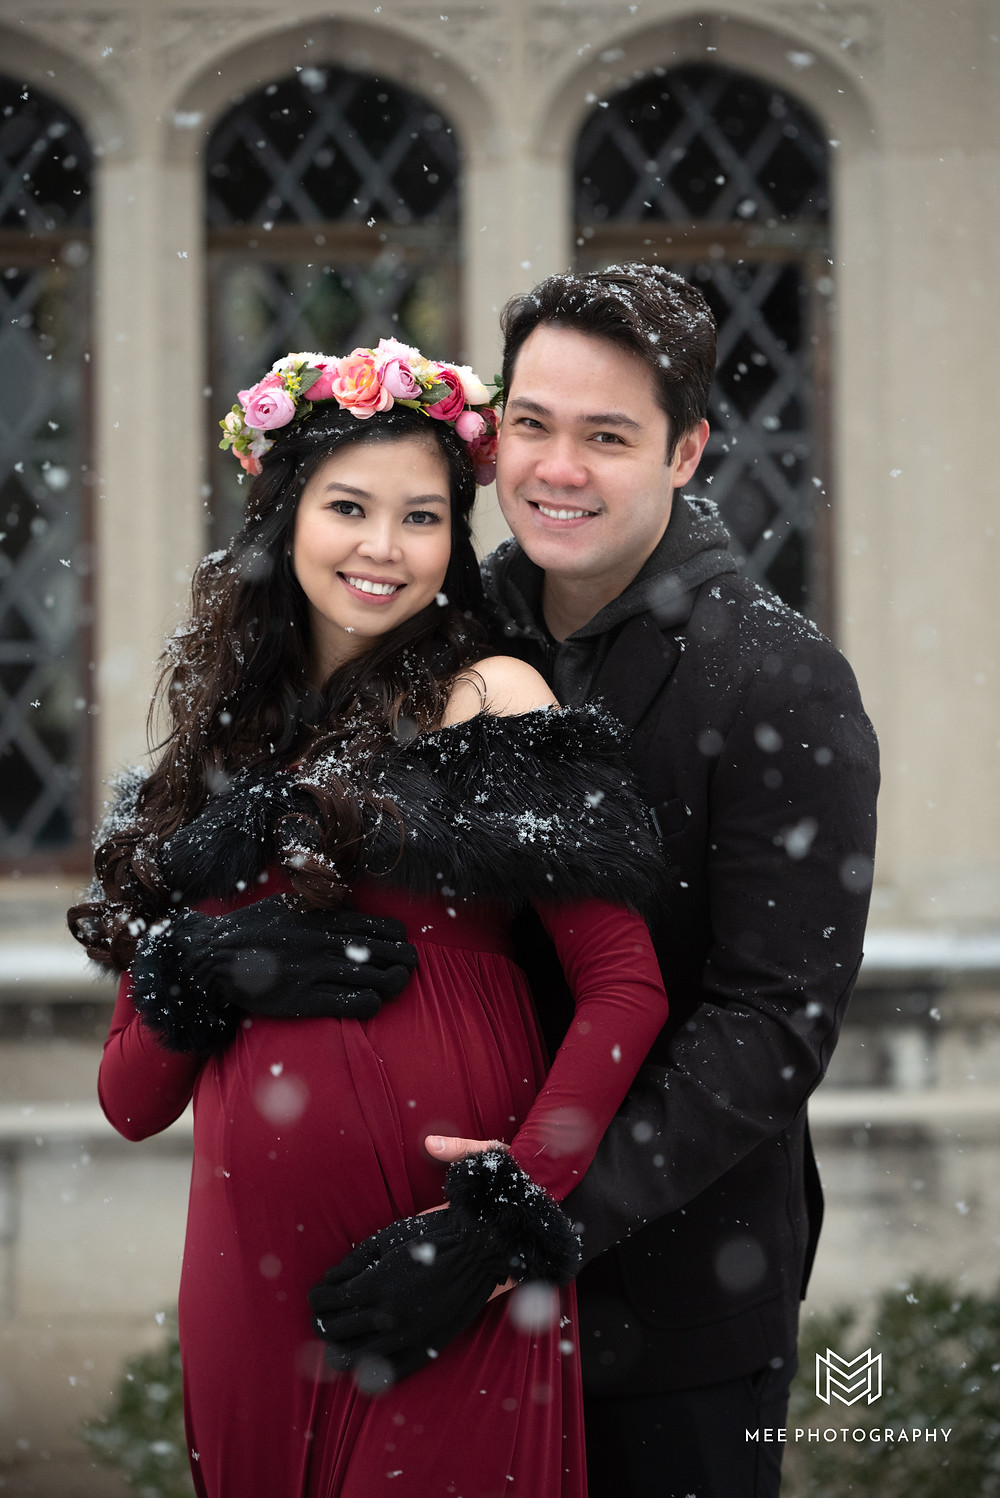 Couple winter maternity session in the snow with woman wearing red dress and flower crown at Hartwood Acres